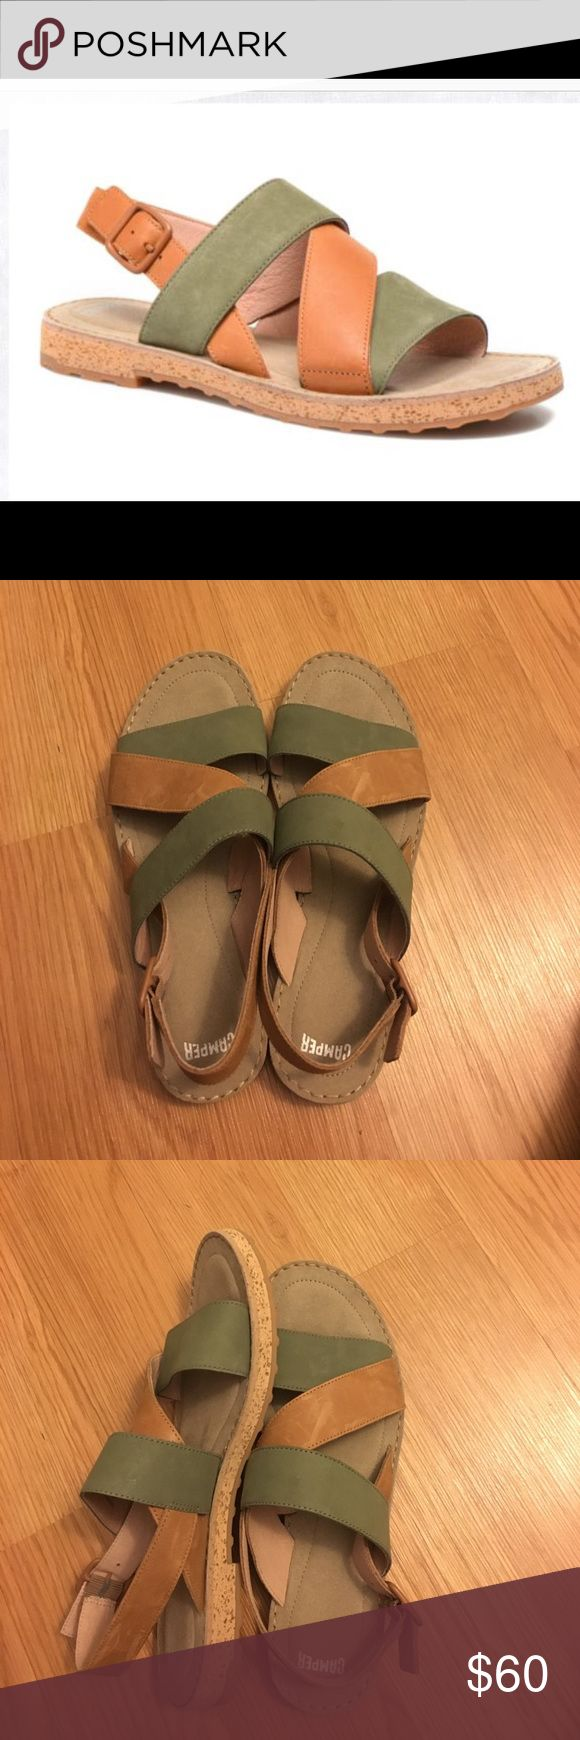 Camper pim pom sandals Camper pim pom sandals very soft suede, what's not to love about these earth tone colors ! Green and tan brand new ! Never worn ! Size 41 -I would say these fit like a 10/10.5 as they do run small!! The shoe says size 11. Open to reasonable offers !!!! Camper Shoes Sandals